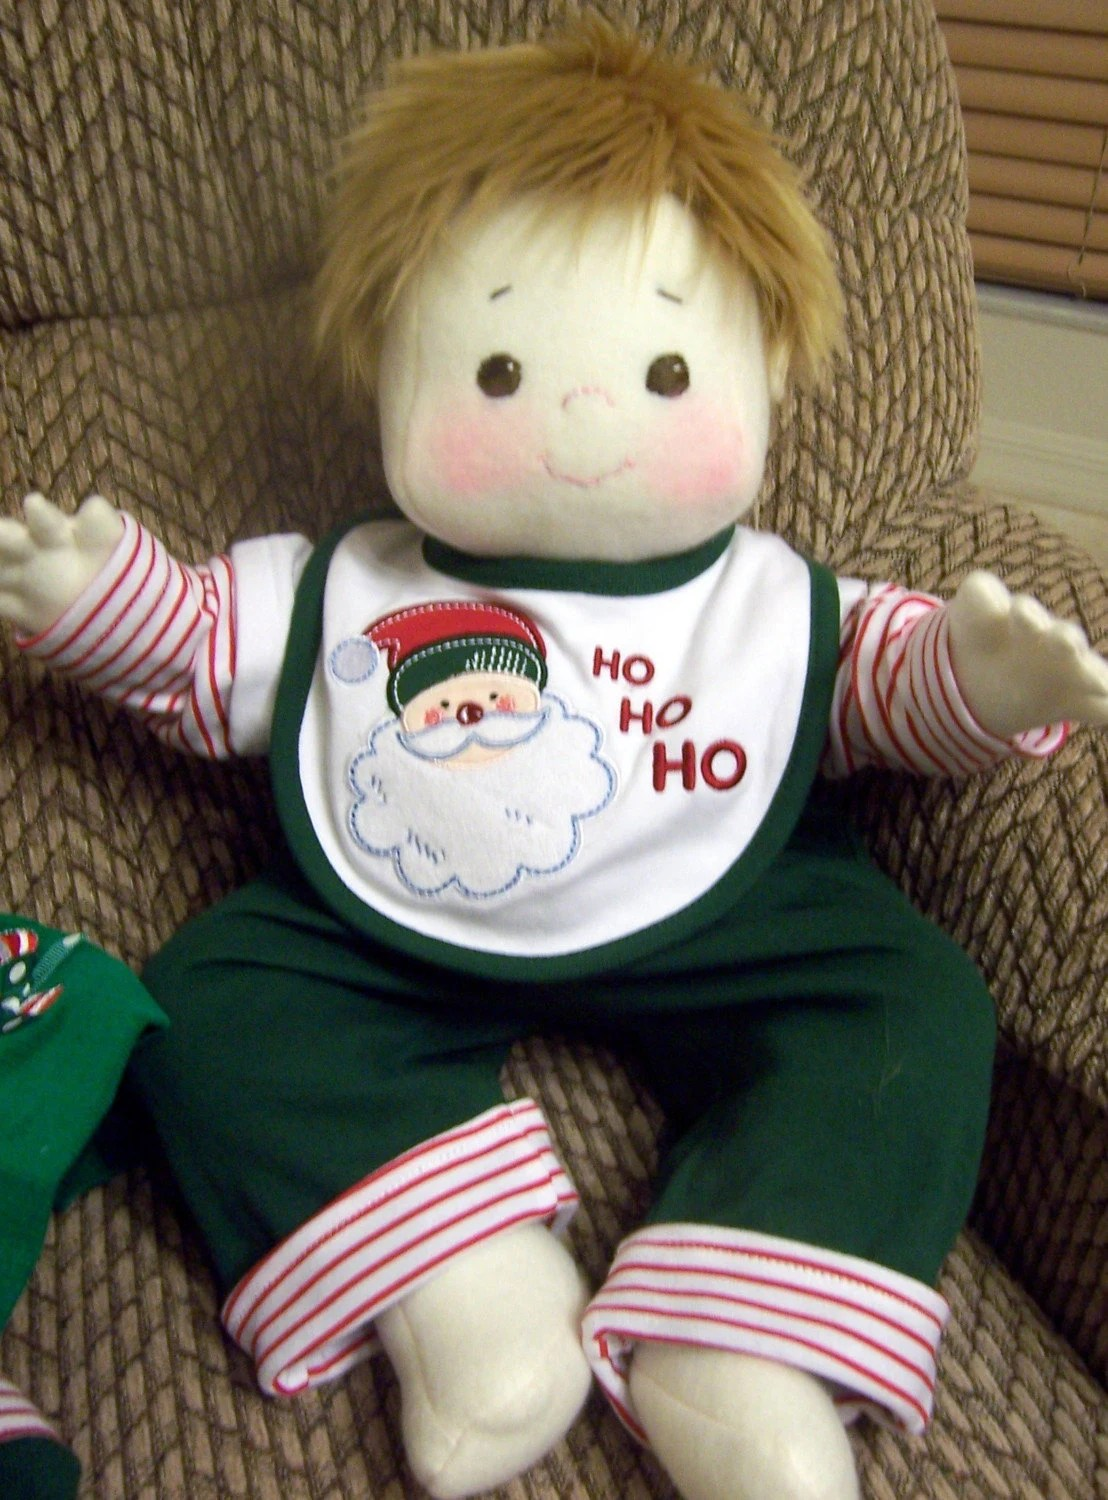 Christmas Kids, a Soft Sculpture, Child Friendly, Jointed, Brother and Sister Doll - Brother Doll